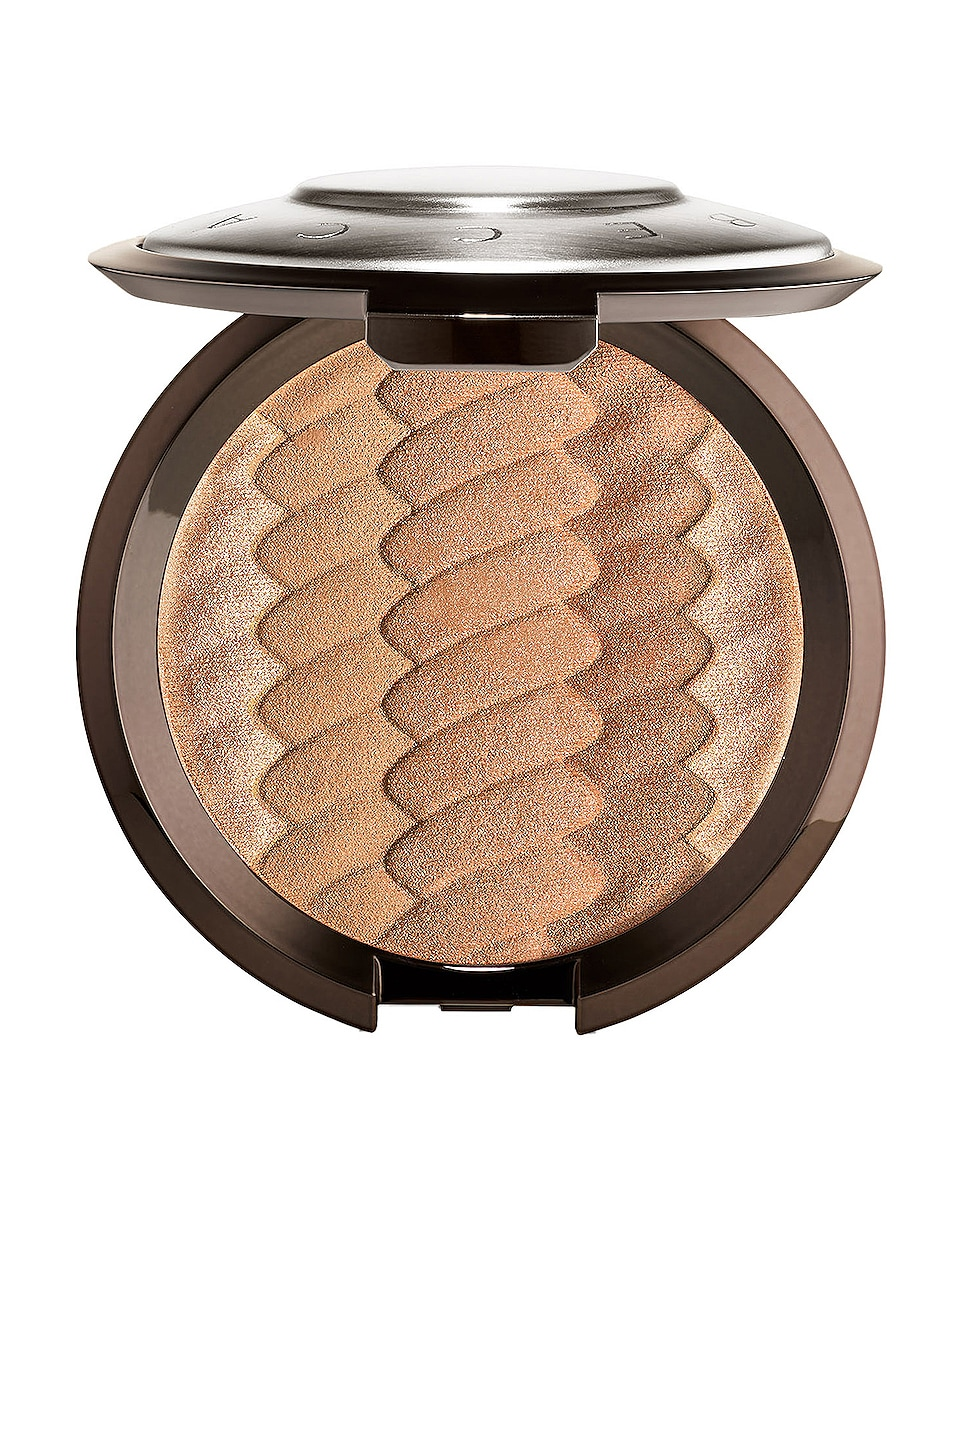 BECCA Gradient Sunlit Bronzer in Sunrise